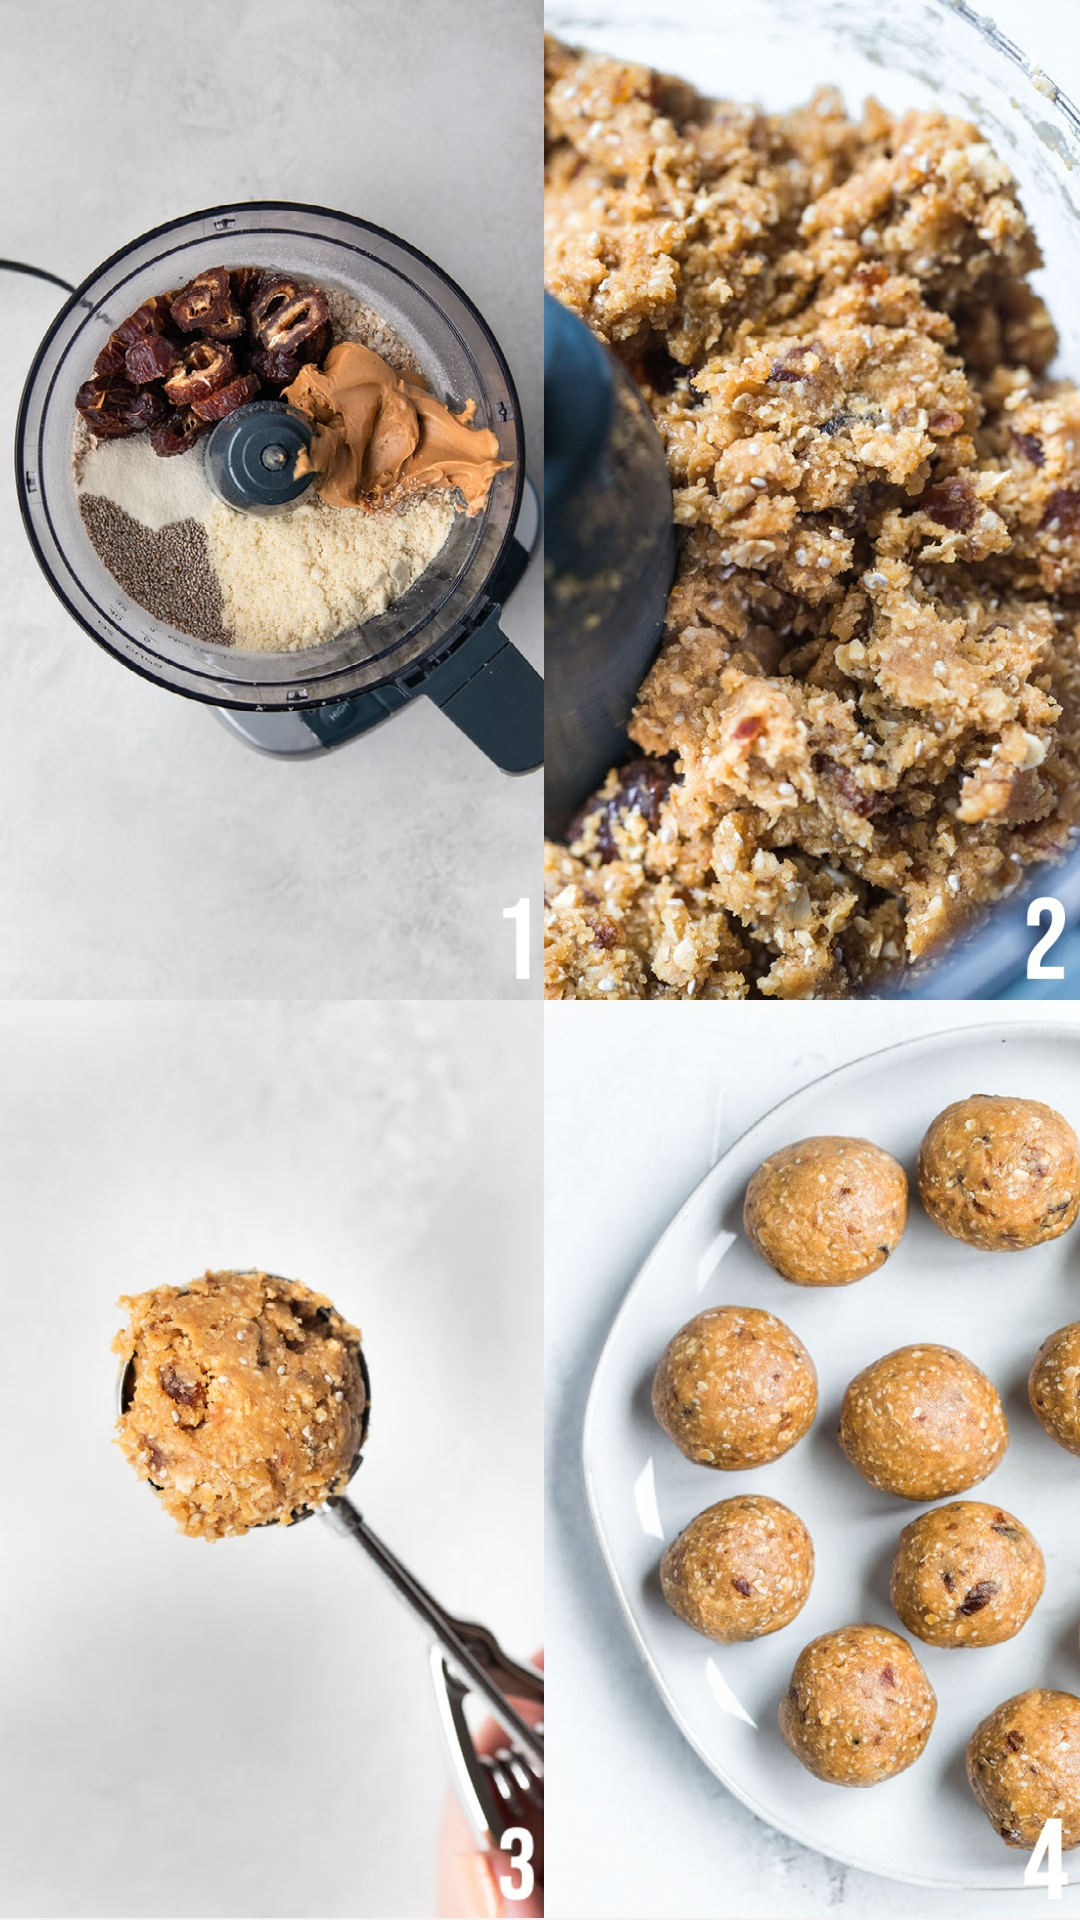 step by step photos of how to make energy bites